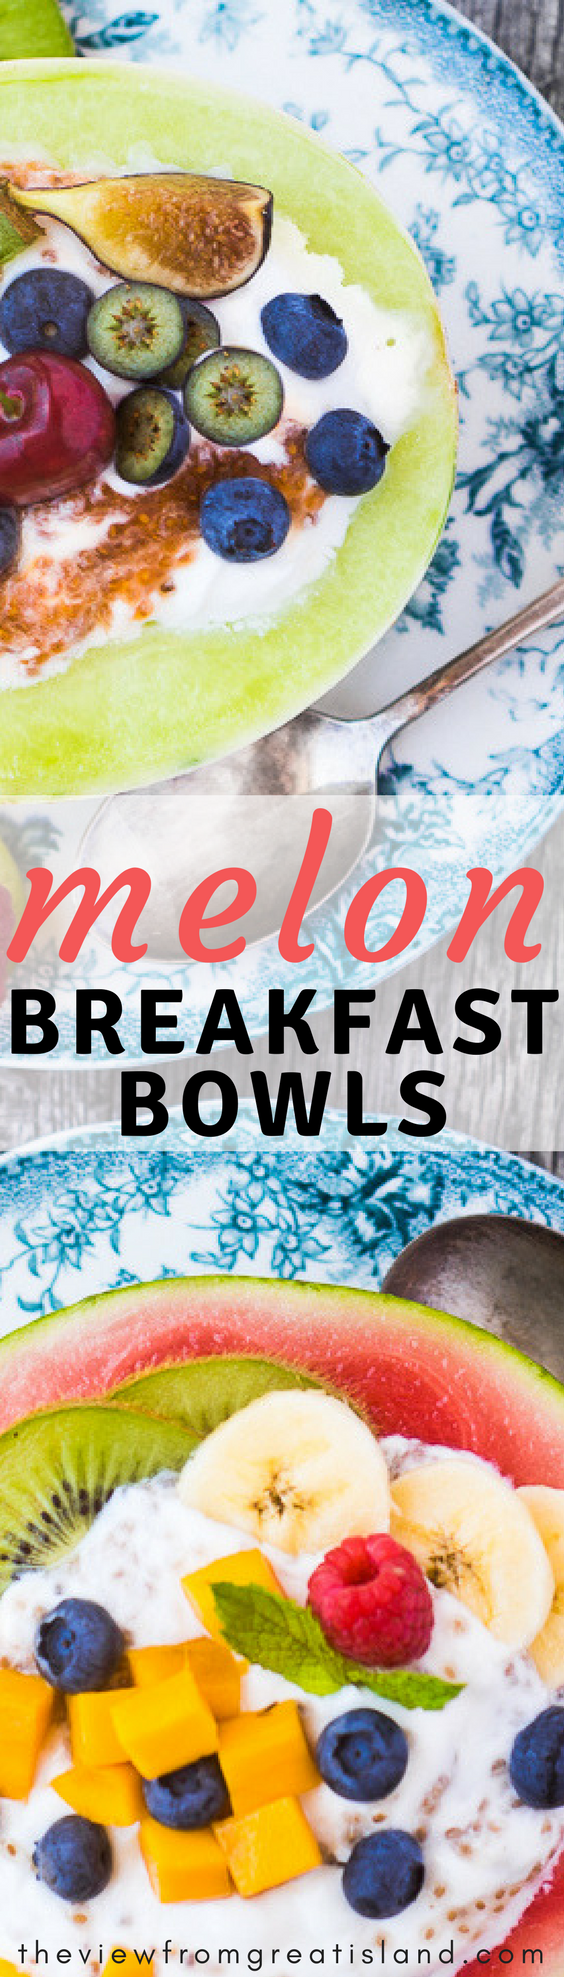 Melon Breakfast Bowls are colorful, healthy, and fun — you simply can't have a bad day when you start it with creamy yogurt piled in half a melon and topped with more fruit…go ahead, eat your bowl, it's good for you! #breakfast #healthybreakfast #yogurtbowls #glutenfreebreakfast #glutenfree #breakfastbowls #fruit #yogurt